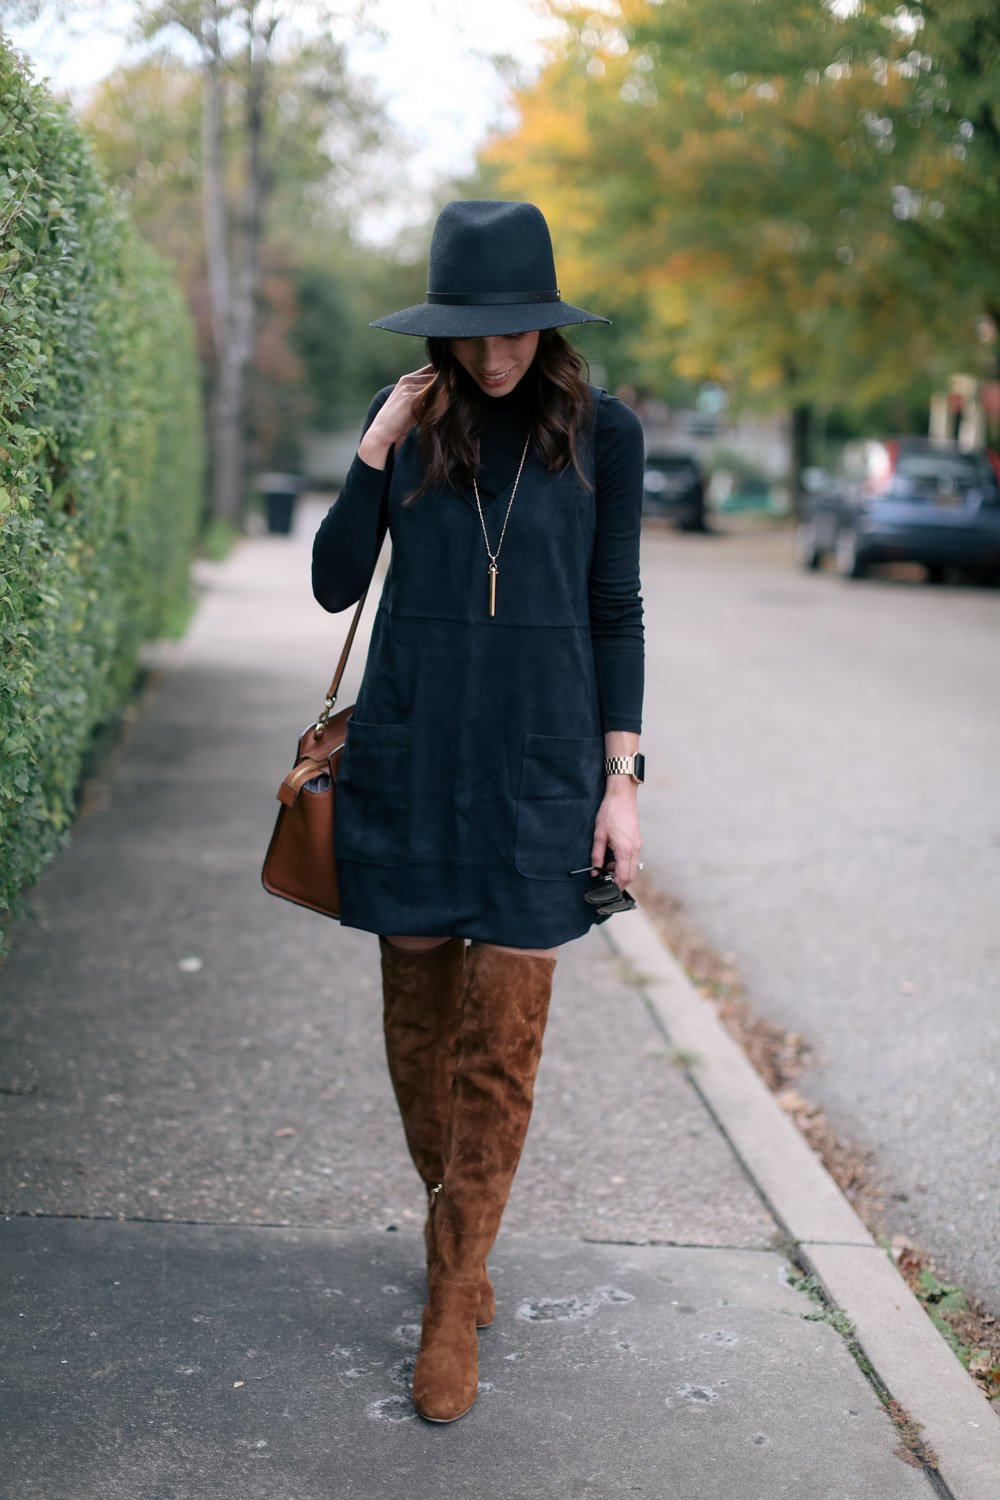 fall suede dress-otk boots-wellesley and king-pittsburgh blogger-@wellesleynking